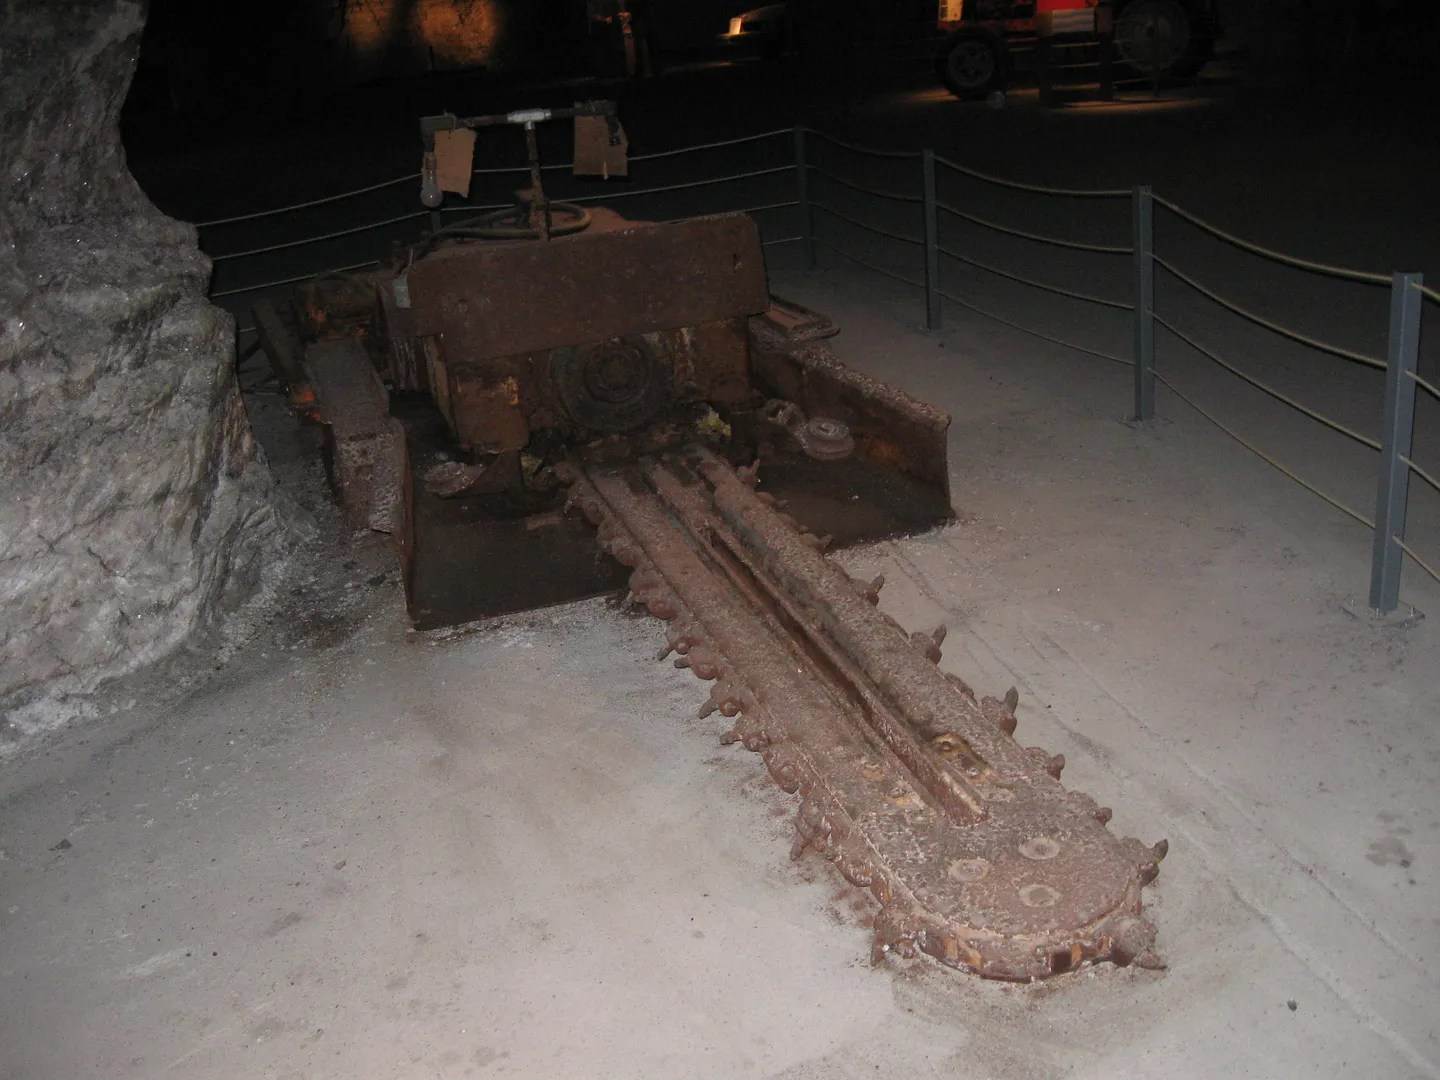 Chainsaw-Mobile, Underground Salt Museum, Hutchinson, Kansas